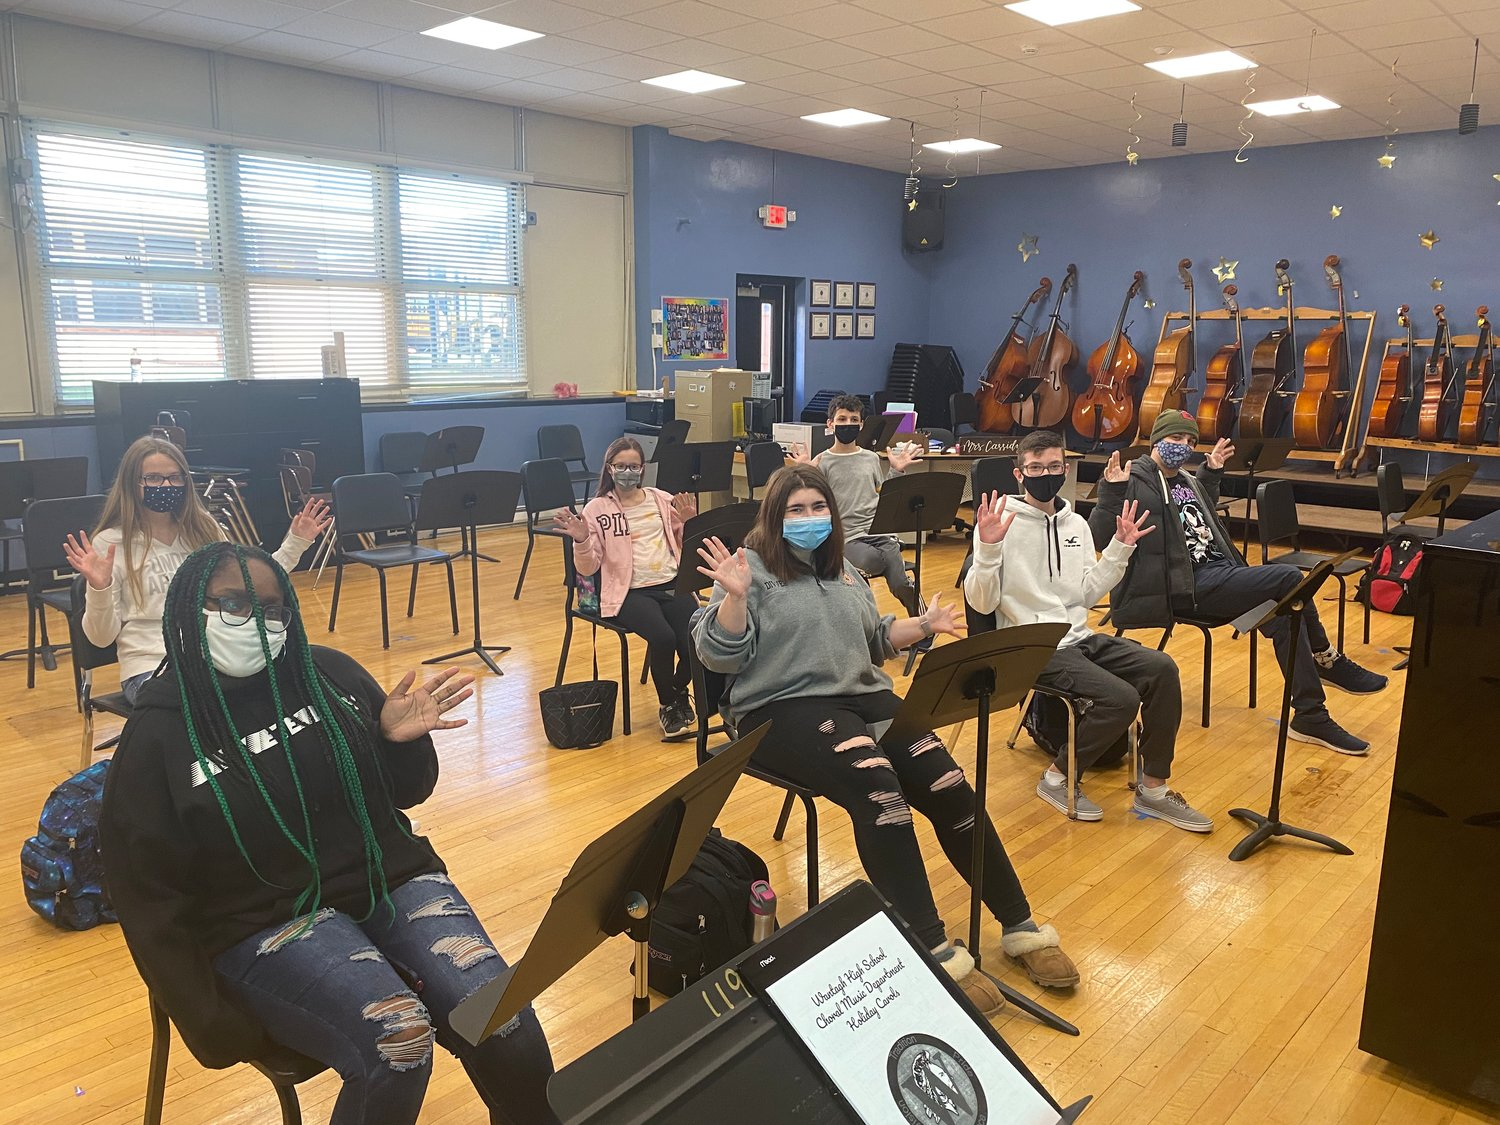 Wantagh High School choral students joined their peers in the school's audio engineering class to create and share a virtual concert with the community.